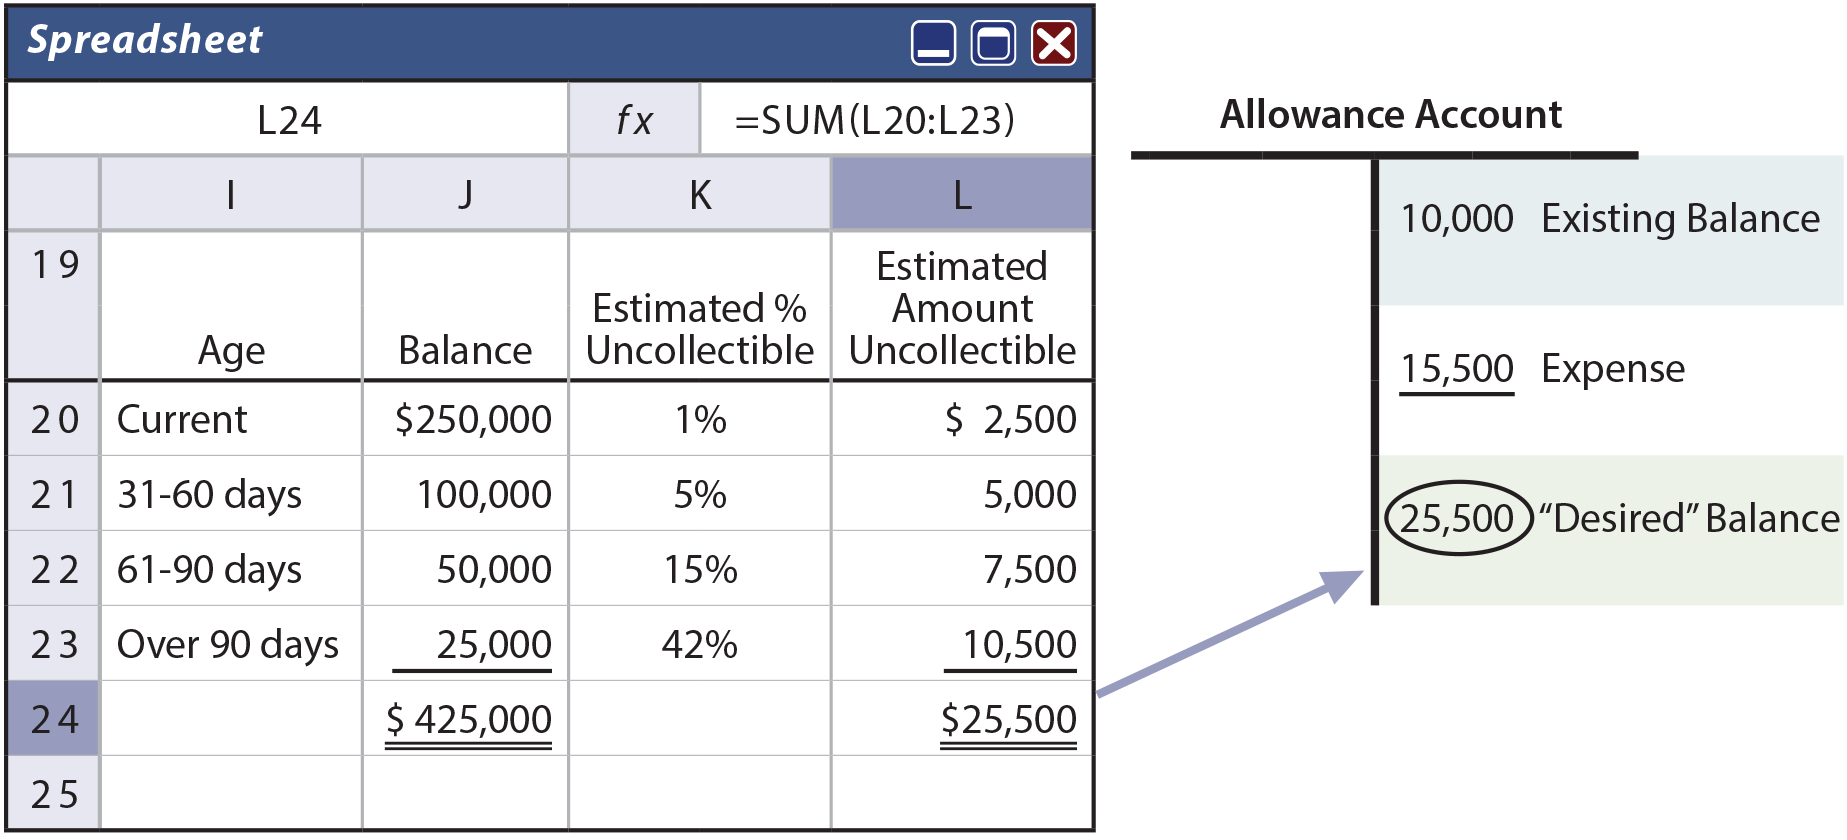 Determine Allowance Account